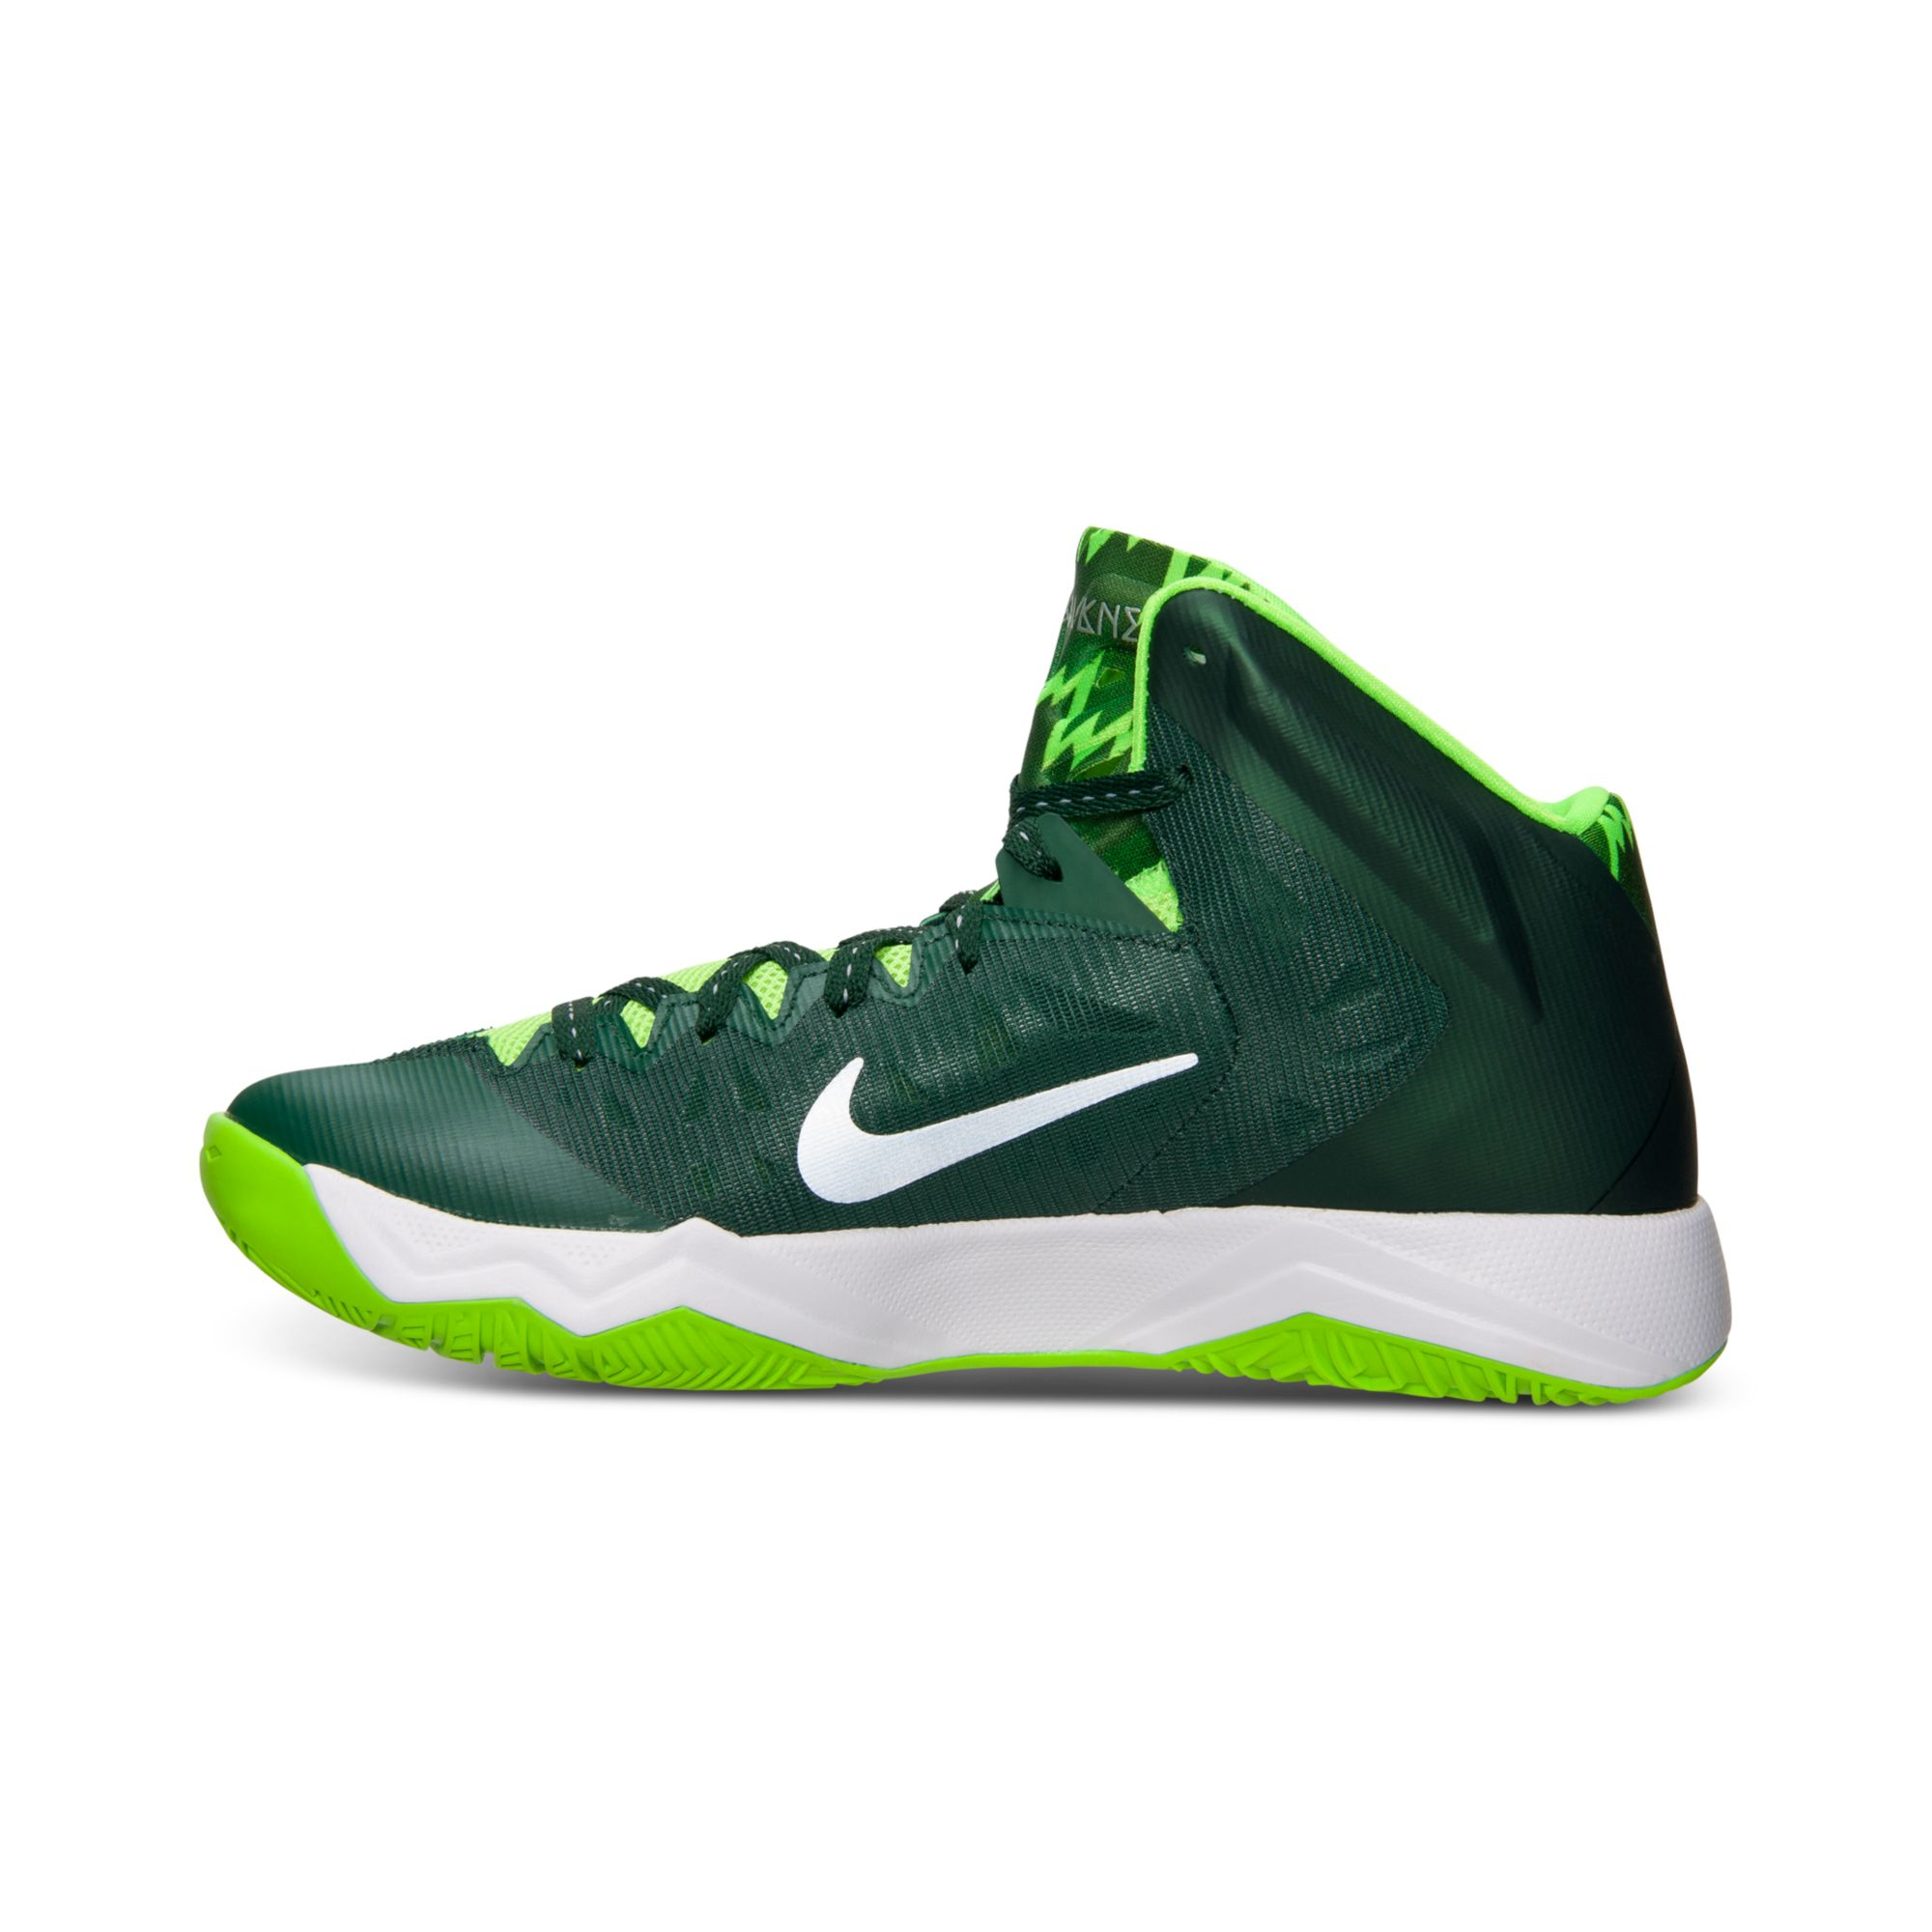 af8f56f5be27 Hyper Shoes Green Lime Nike Basketball Quickness